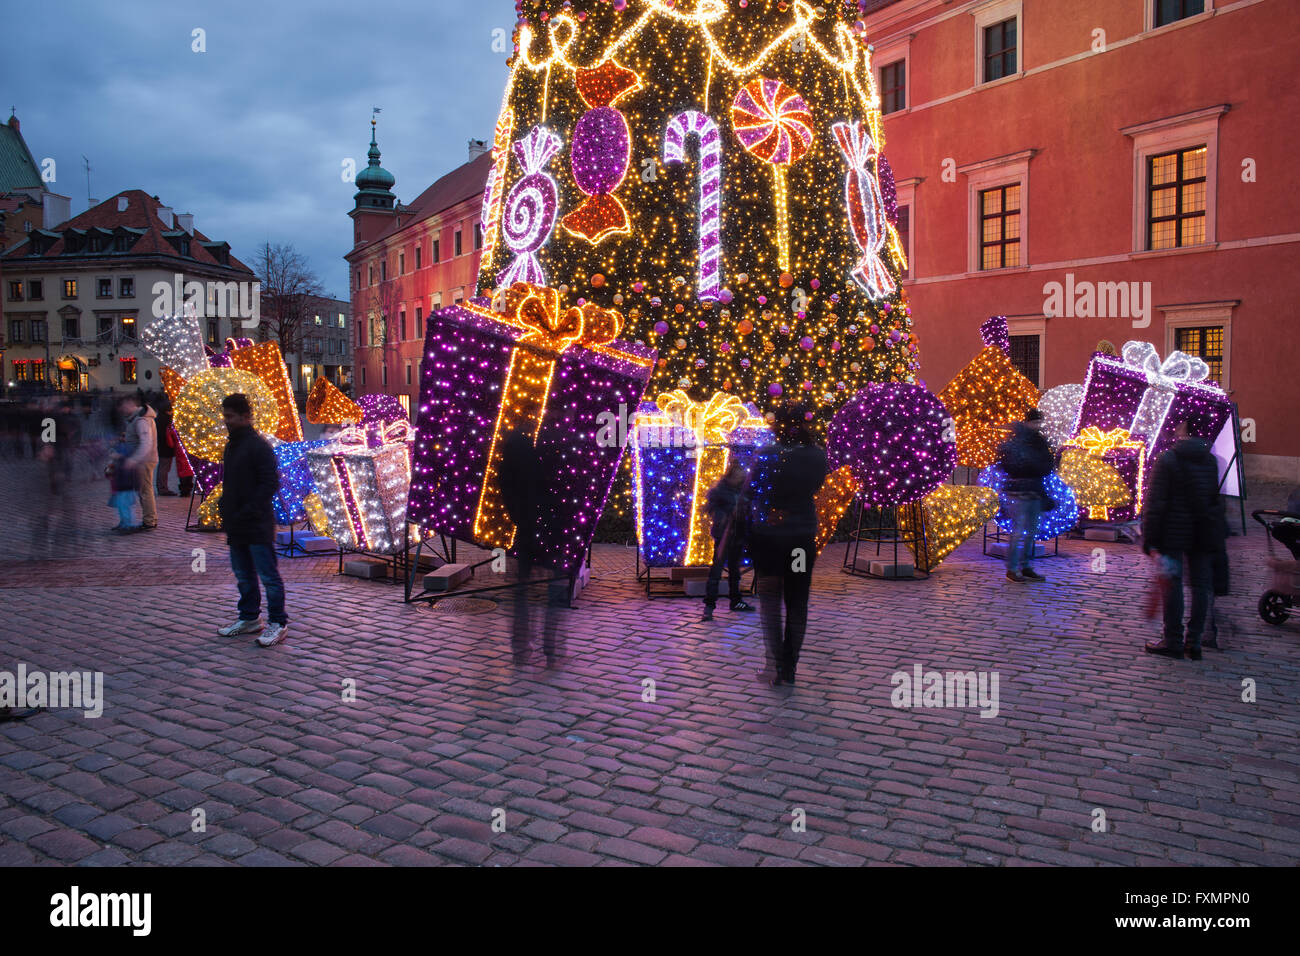 Poland, city of Warsaw, Old Town Square, Christmas Tree next to Royal Castle with gifts, presents, ornaments, evening - Stock Image